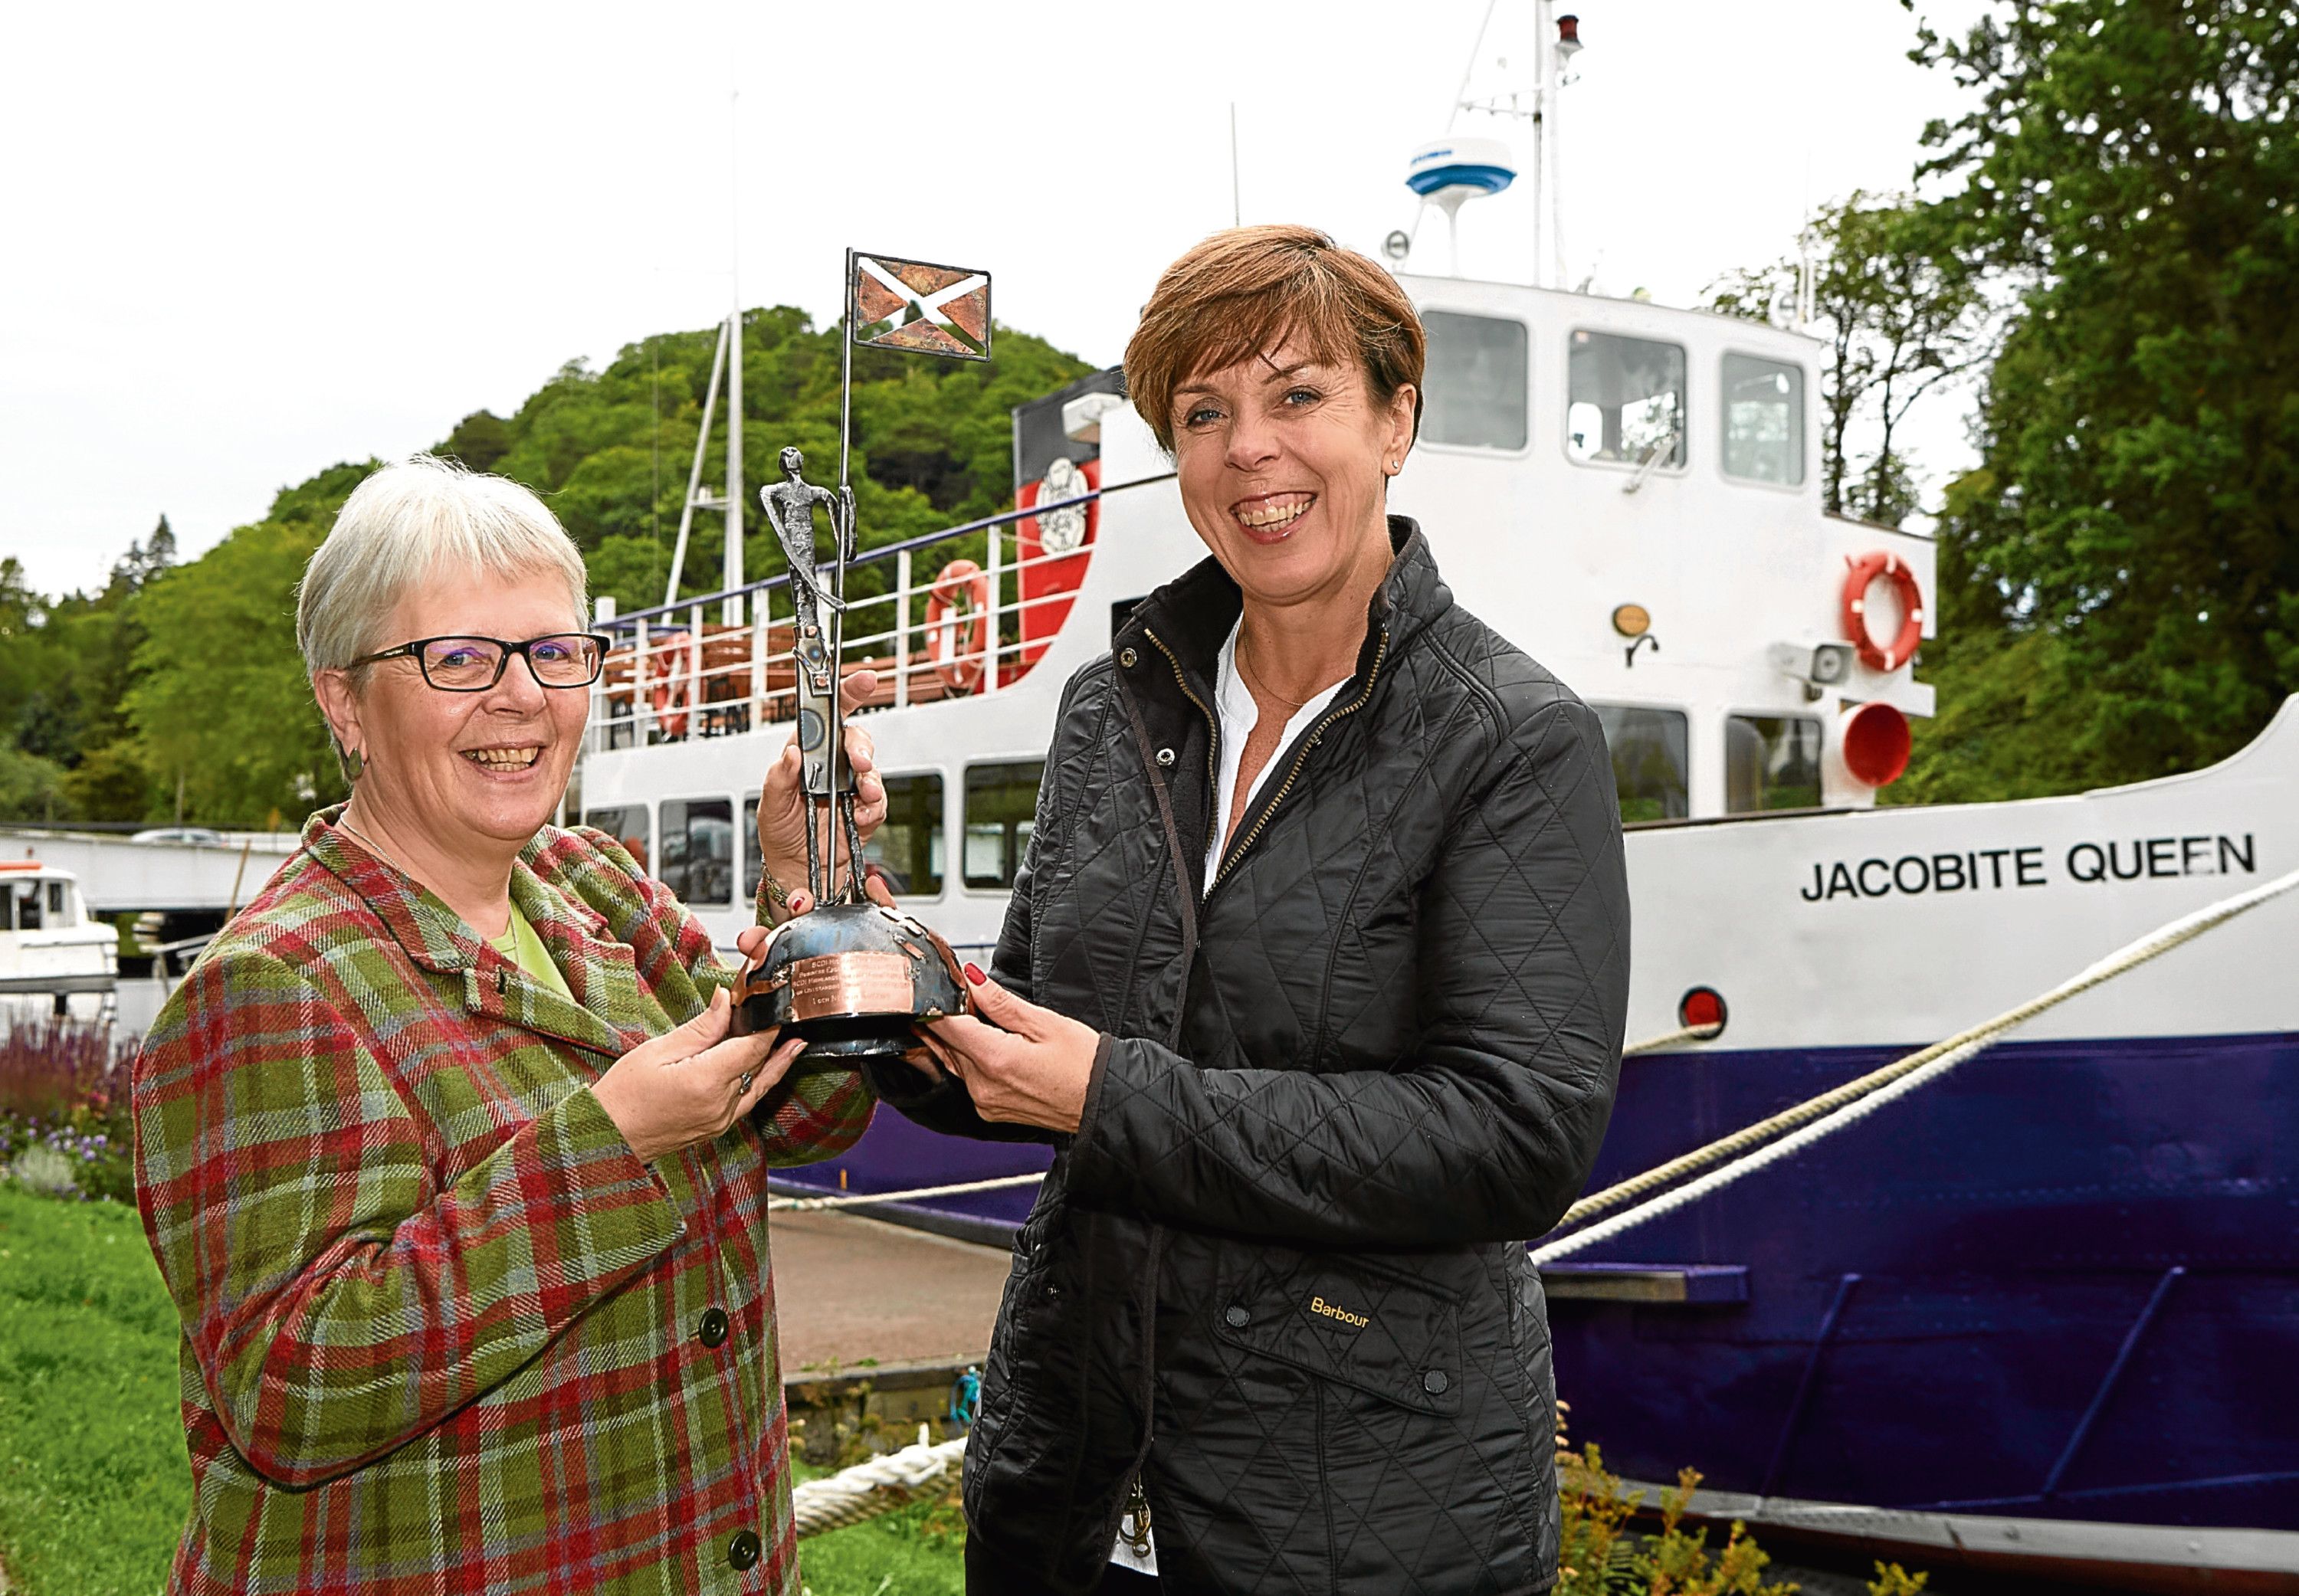 Freda Newton of Loch Ness by Jacobite receives the SCDI Highlands and Islands Chairs Award for Outstanding Business Achievement from Jane Cumming.